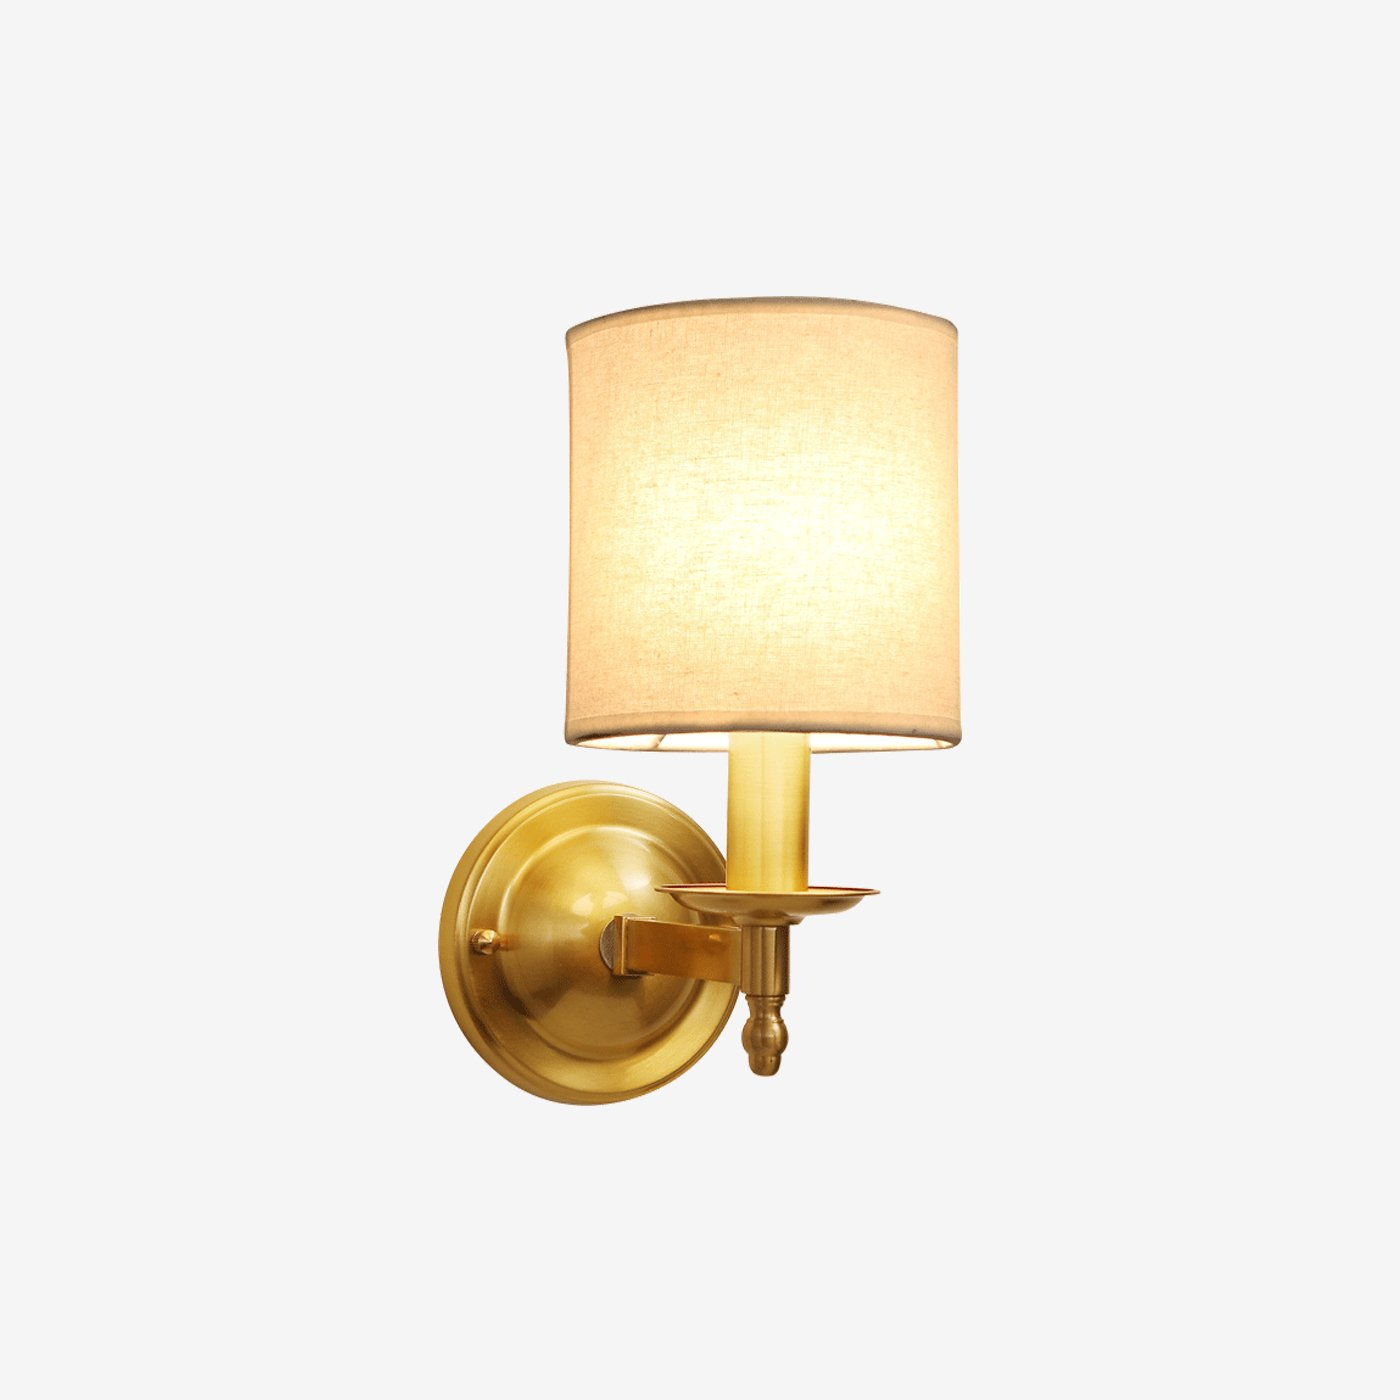 Brass Finish With Shades Wall Lamp Lights on